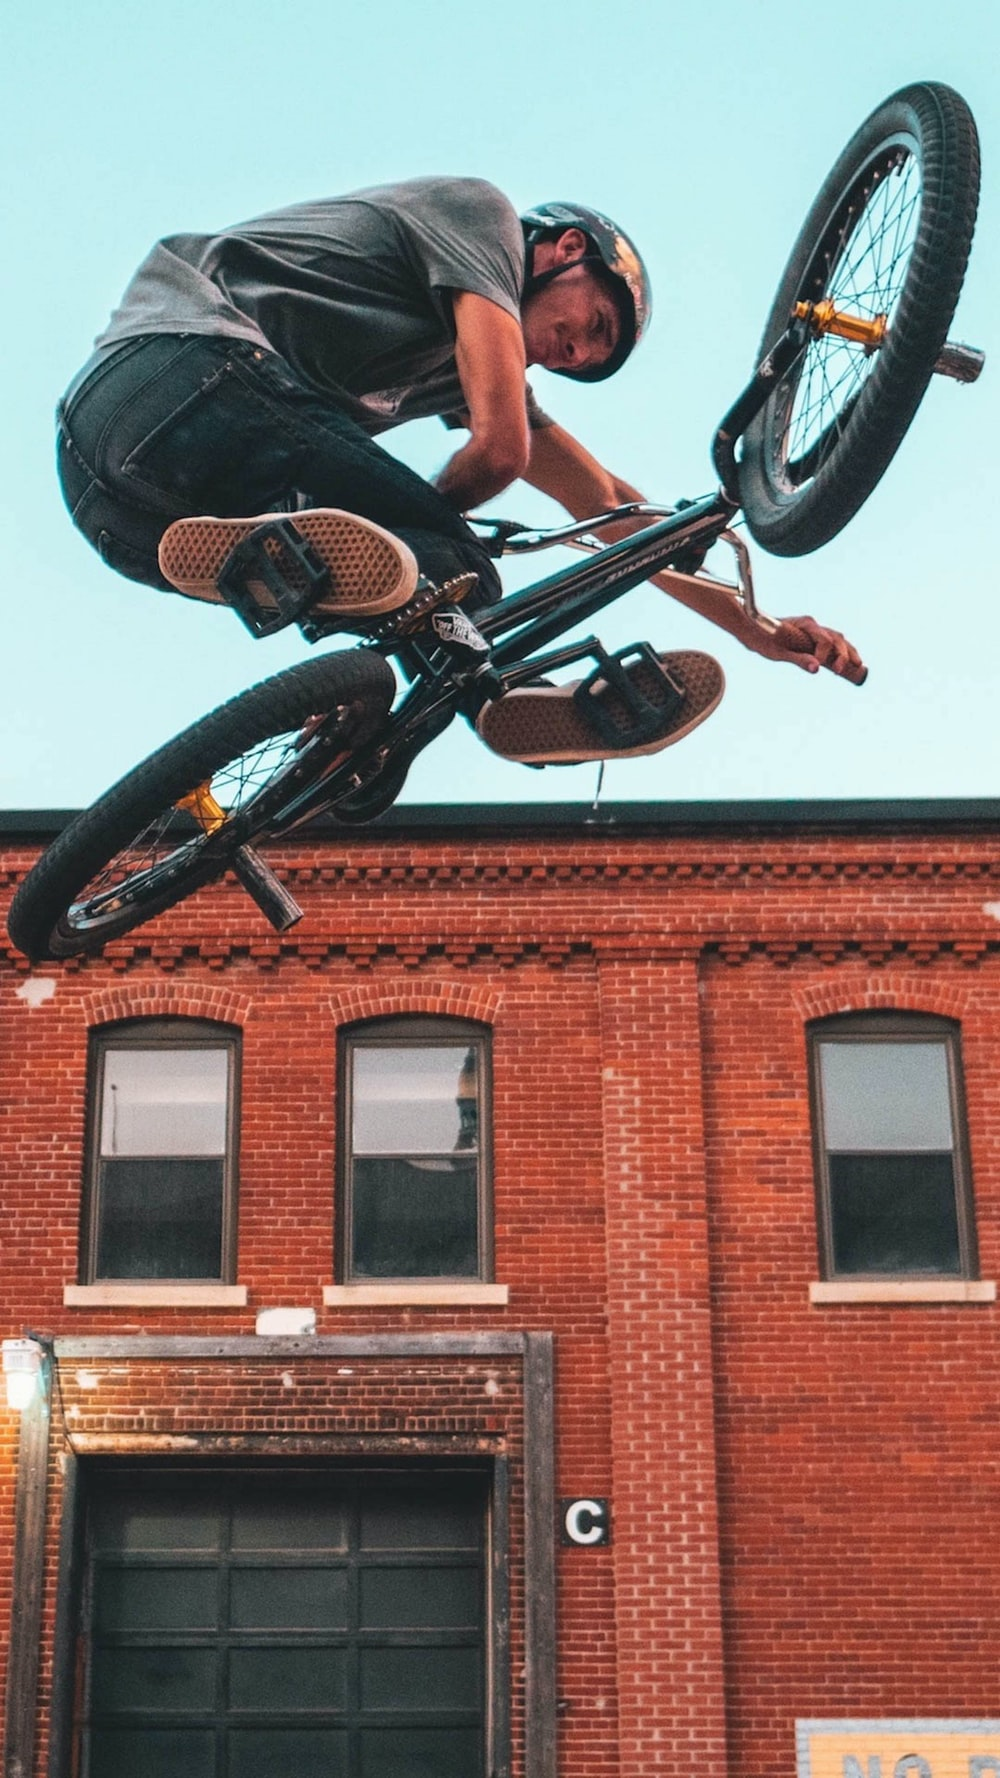 man riding on black BMX bike in mid-air